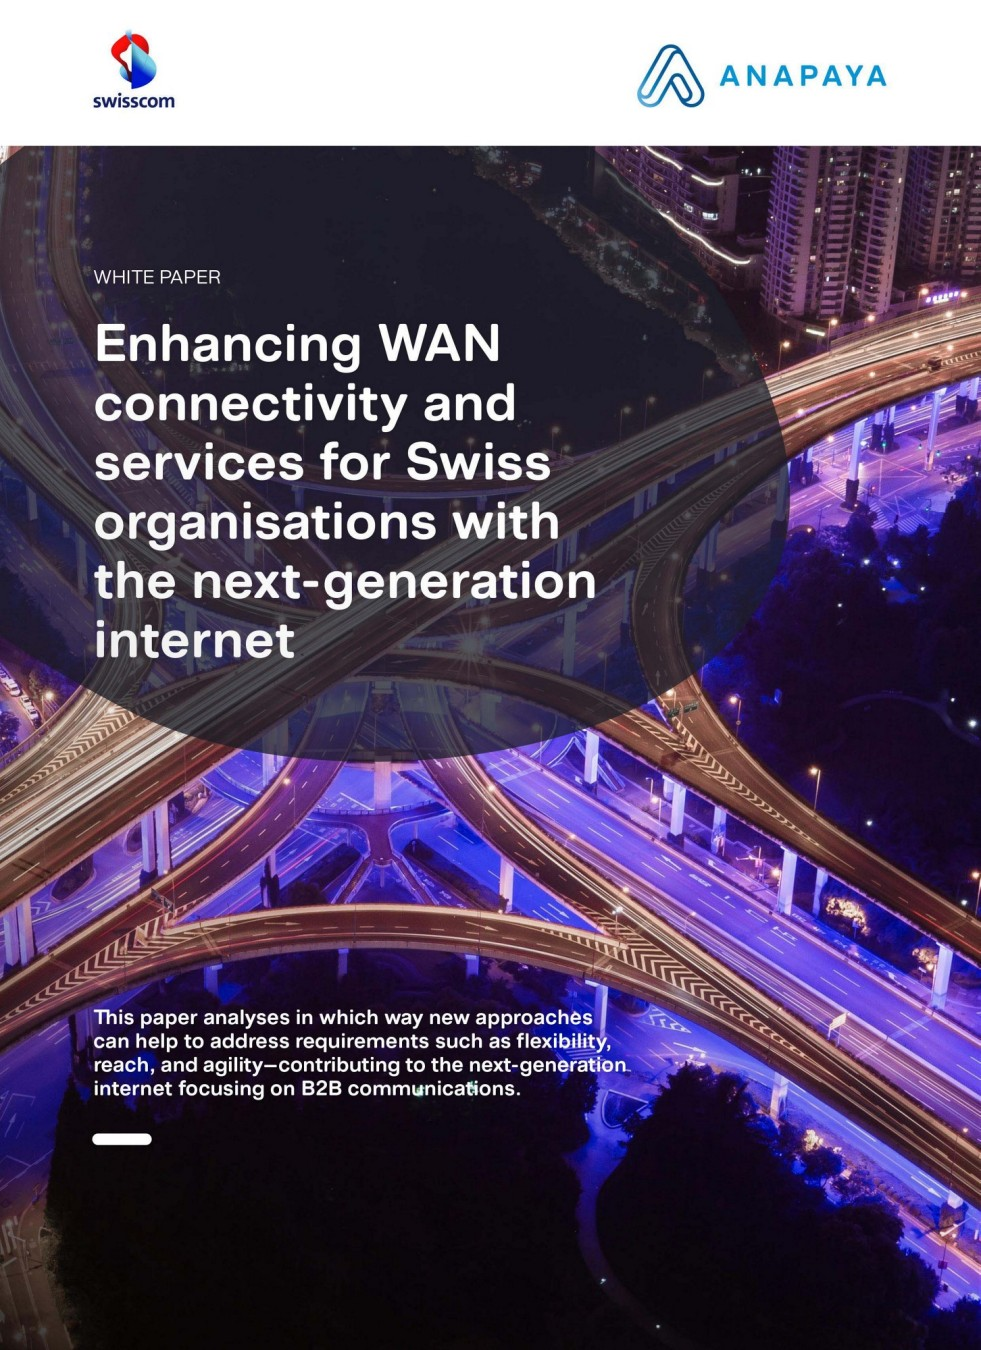 Enhancing WAN connectivity and services for Swiss organisations with the next-generation internet.